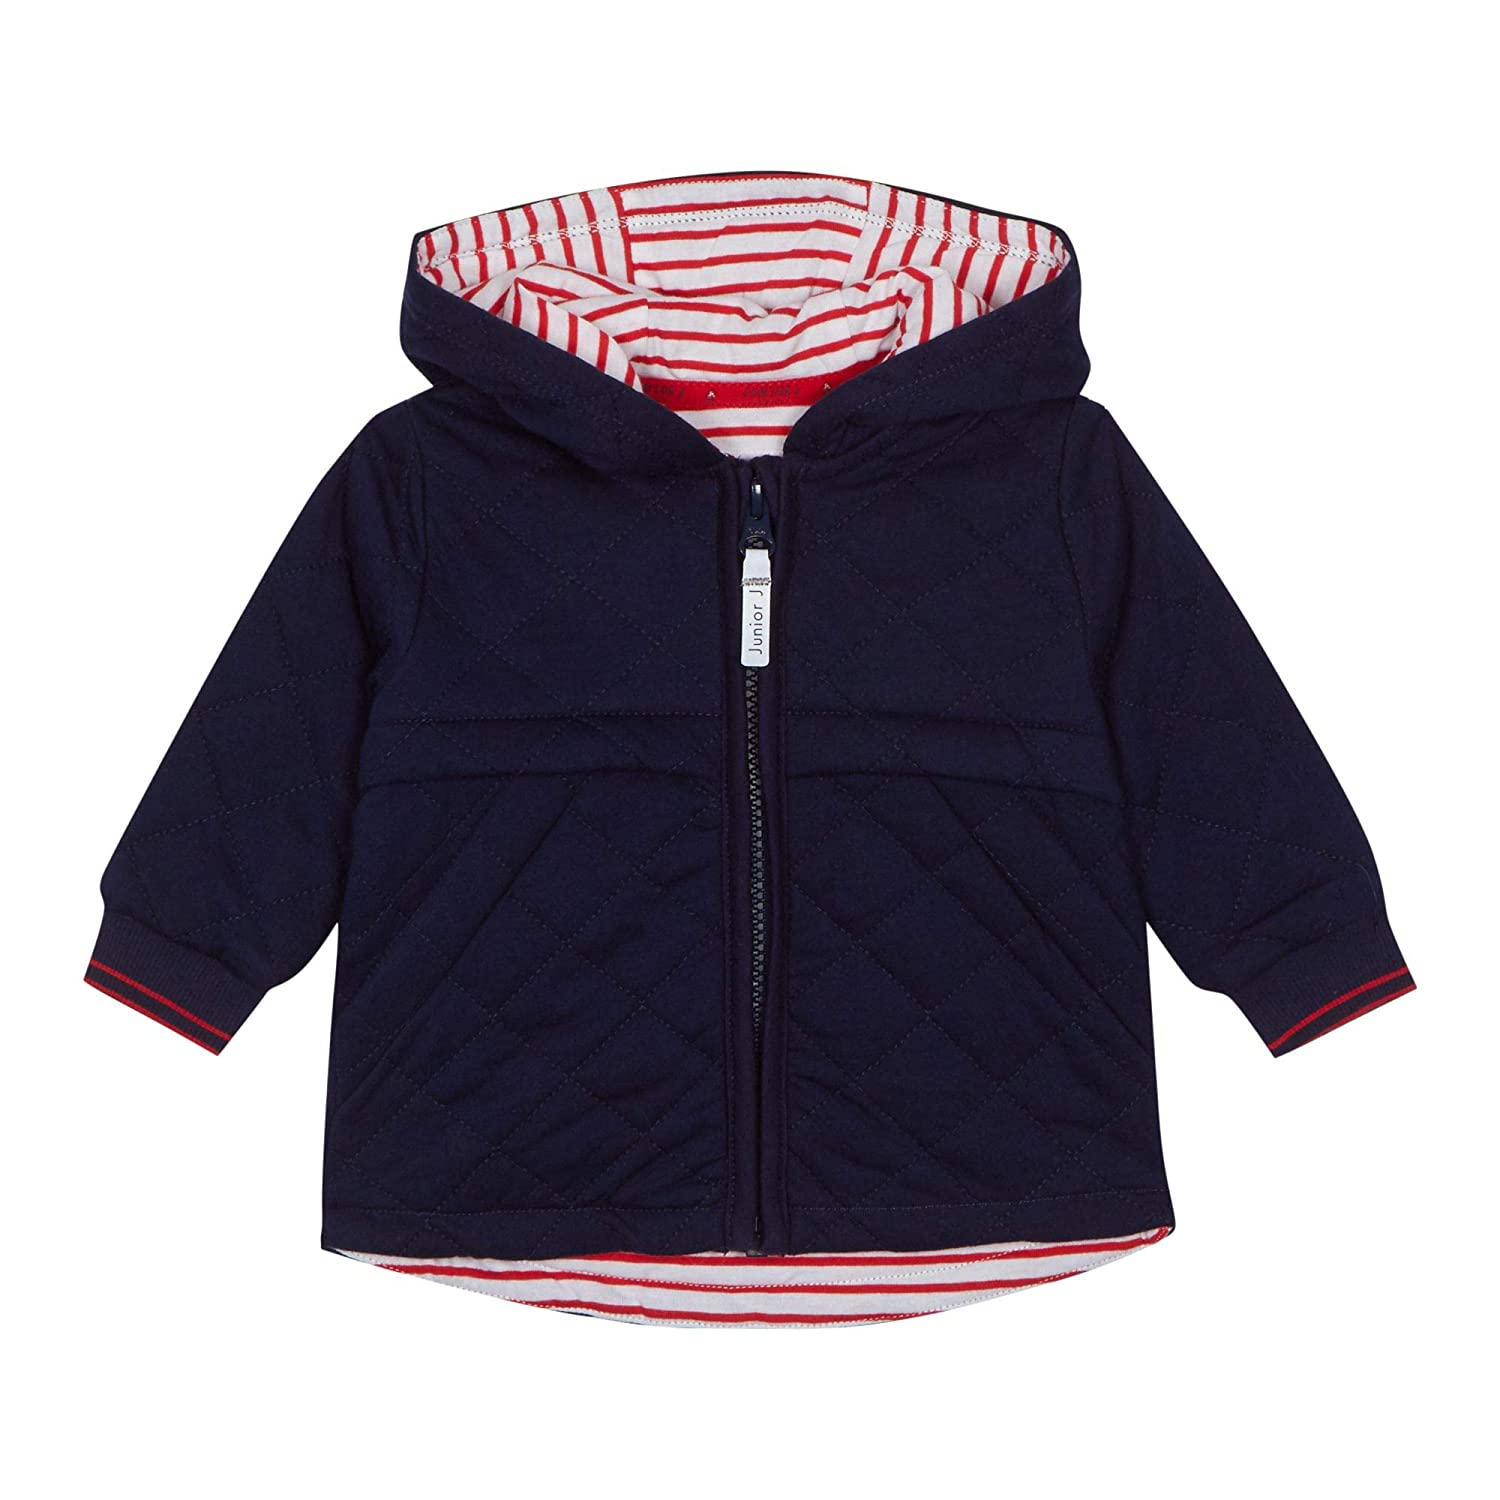 J by Jasper Conran Kids Babies' Navy Quilted Jacket